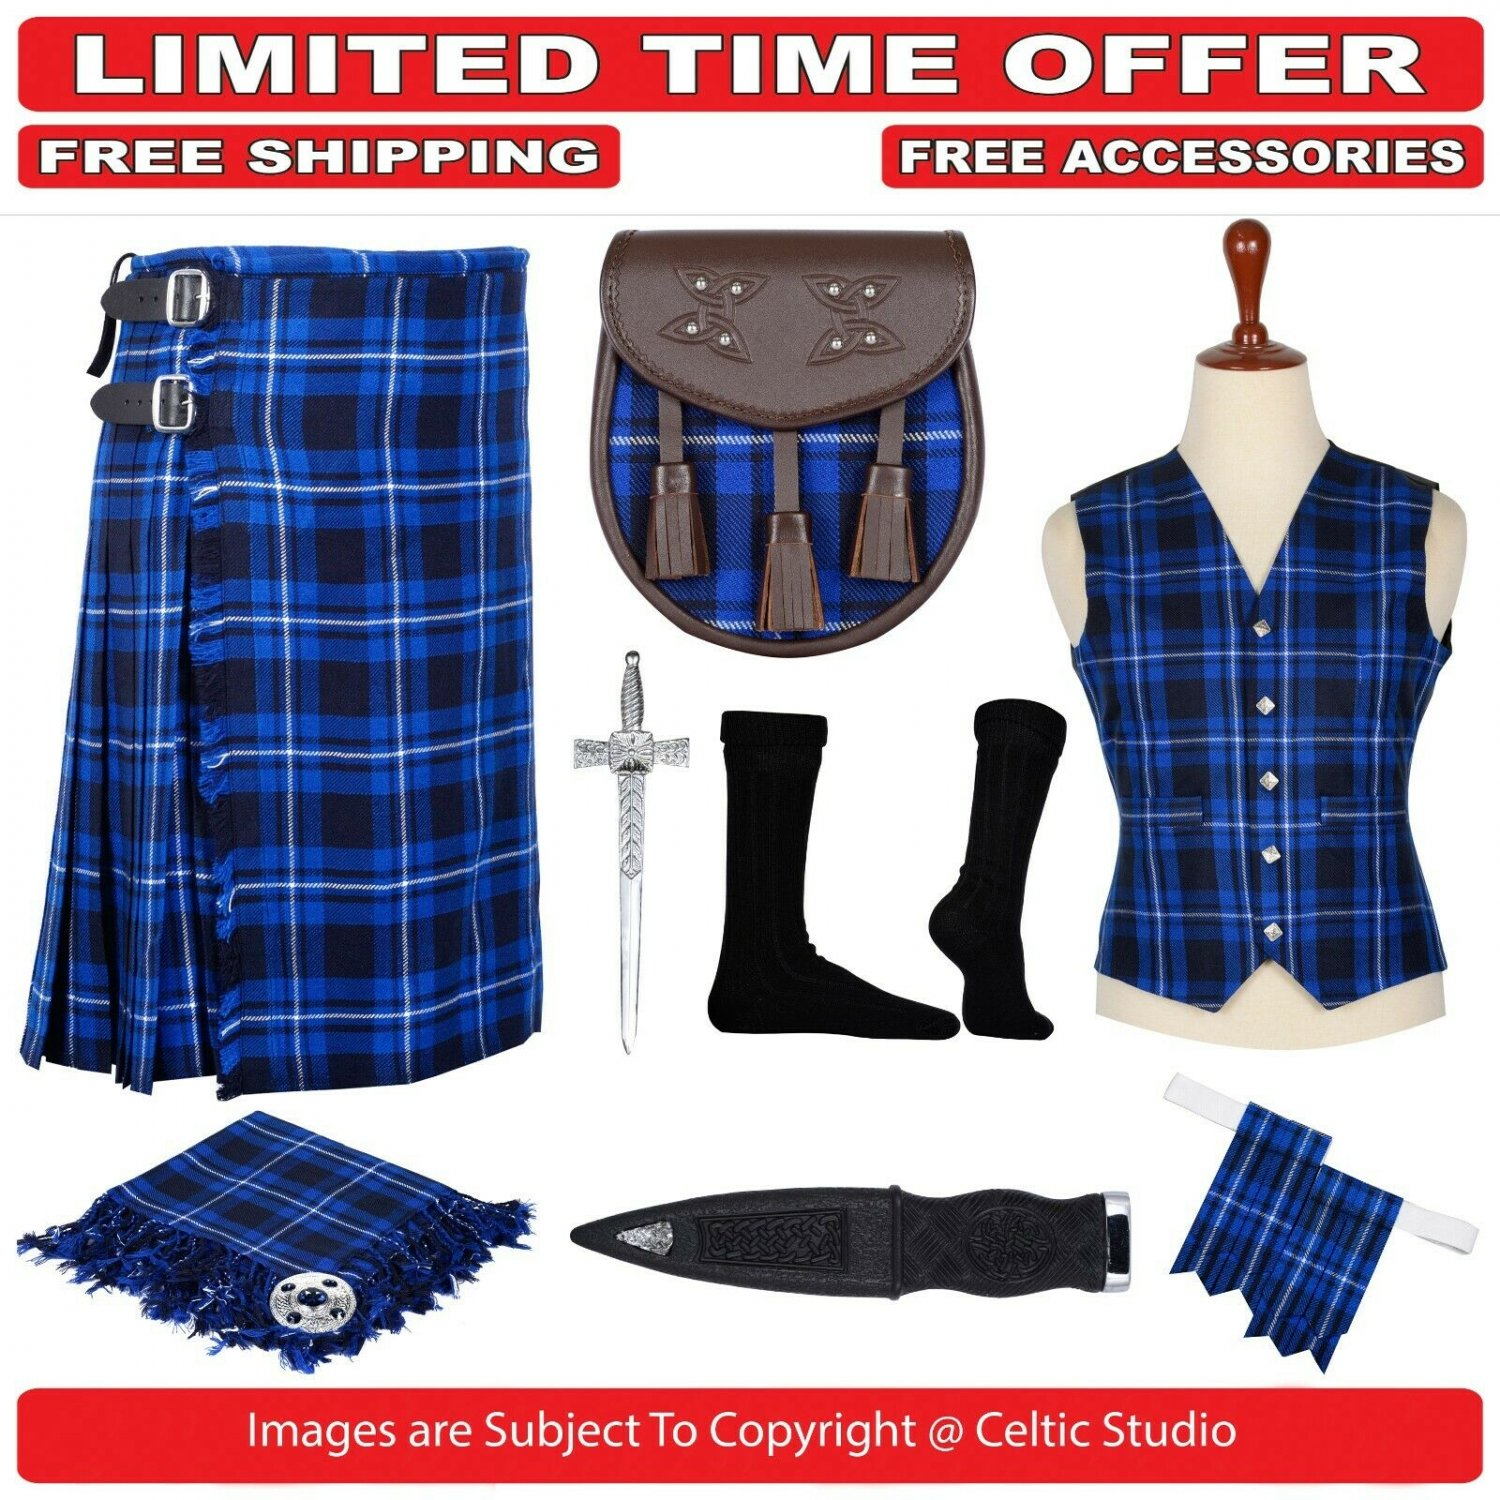 46 size Ramsey Blue Scottish Traditional Tartan Kilt With Free Shipping and 9 Accessories